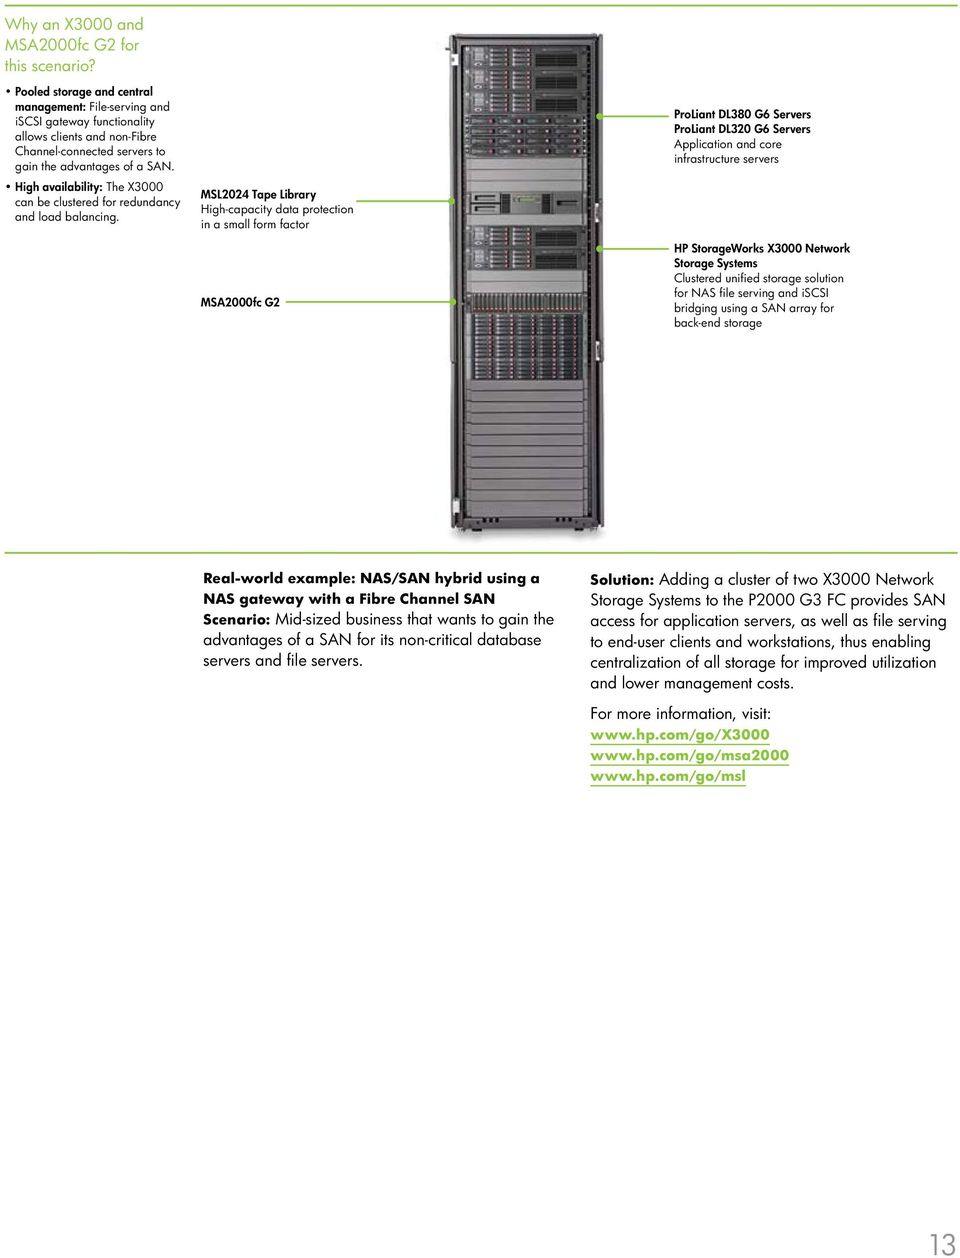 ProLiant DL380 G6 Servers ProLiant DL320 G6 Servers Application and core infrastructure servers High availability: The X3000 can be clustered for redundancy and load balancing.